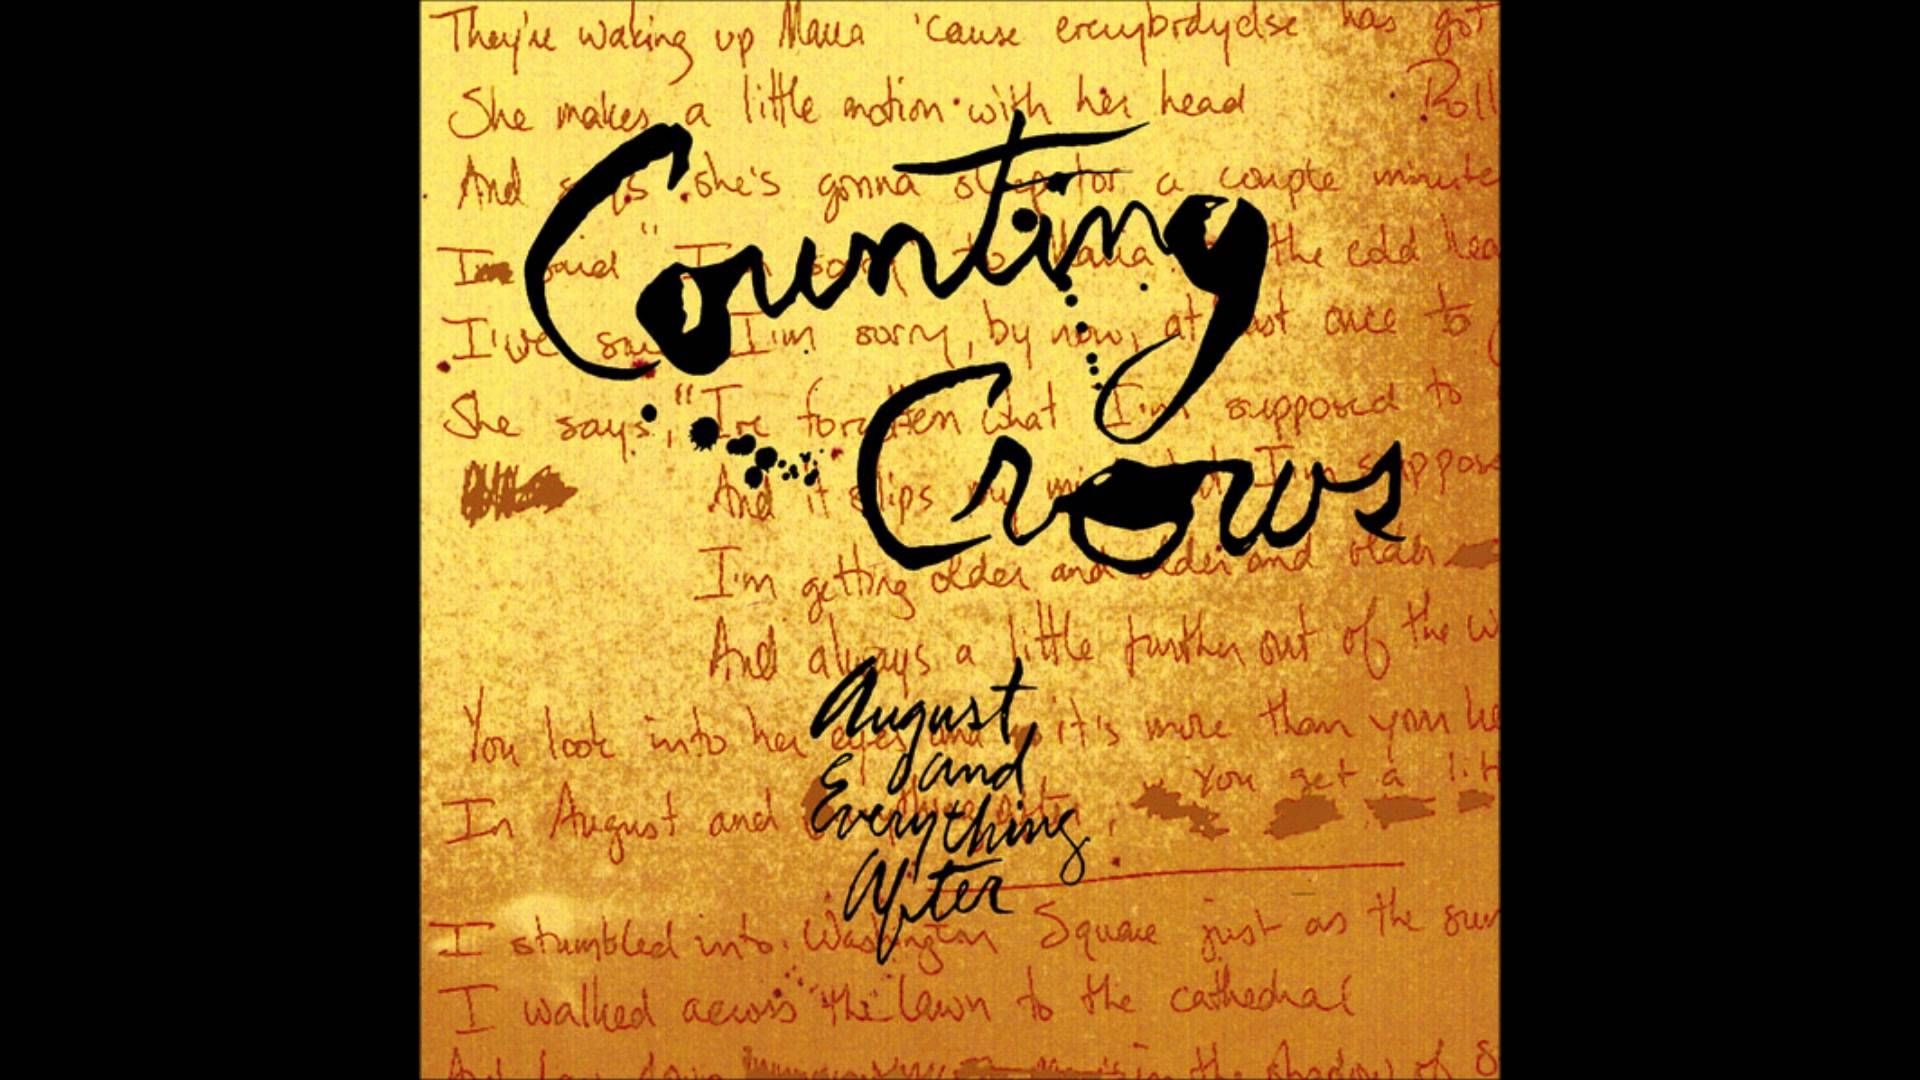 Counting crows sullivan street sing me to sleep pinterest counting crows sullivan street sing me to sleep pinterest crows and music artists hexwebz Choice Image